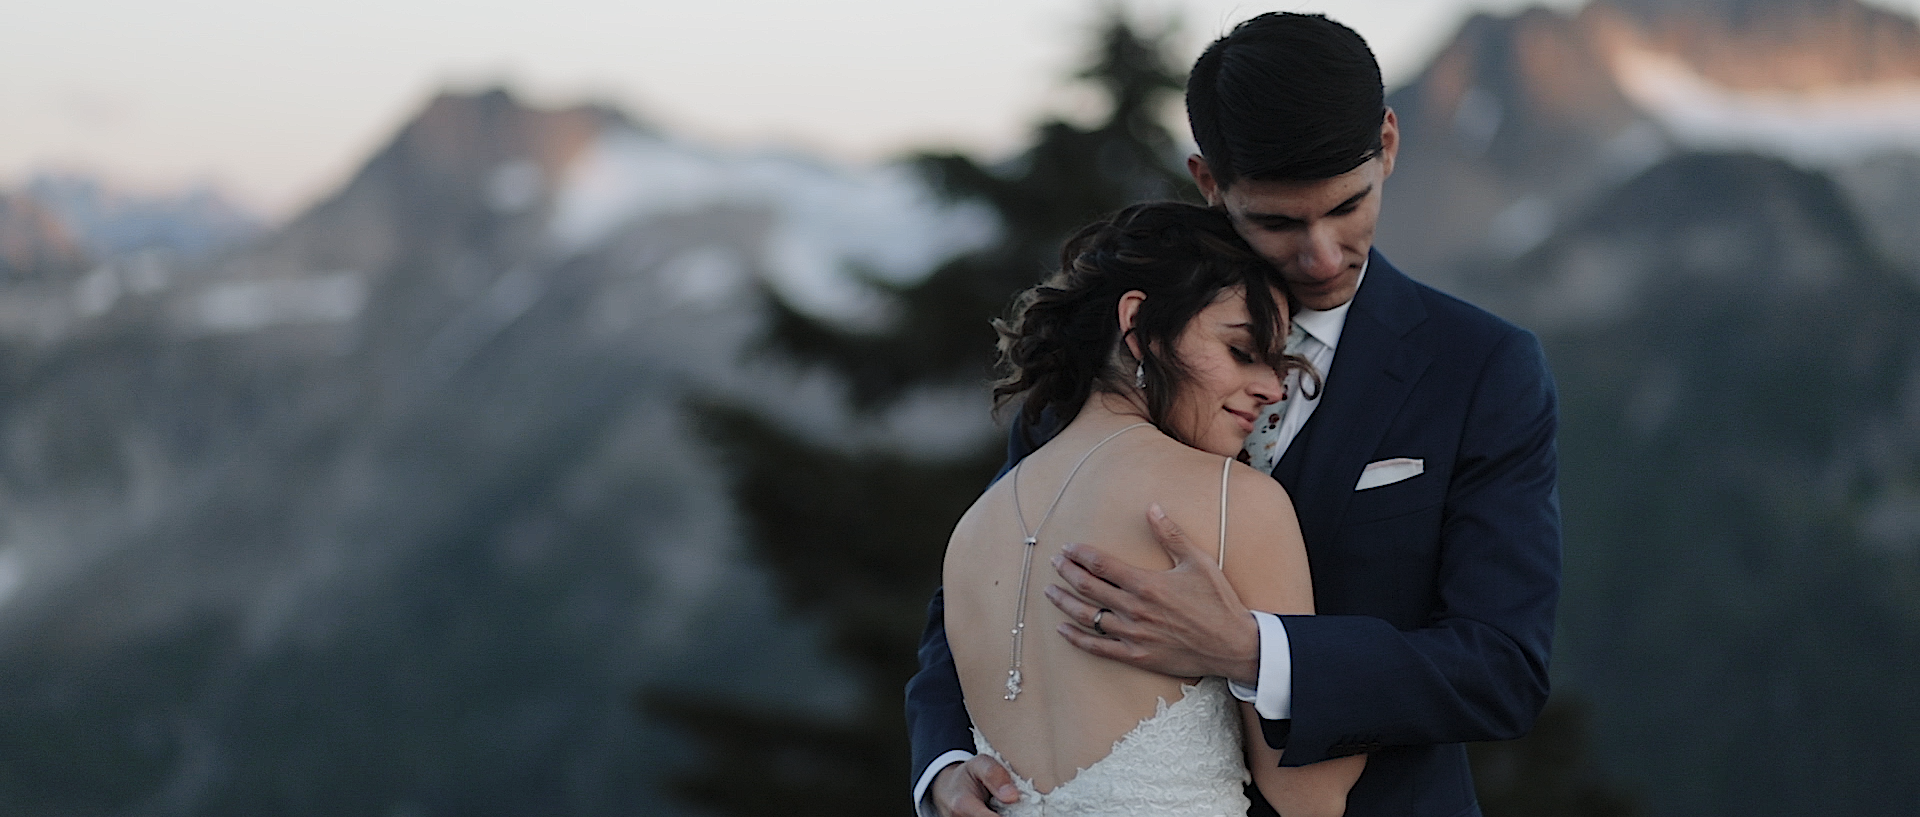 Samantha + Greg | Deming, Washington | Artist Point